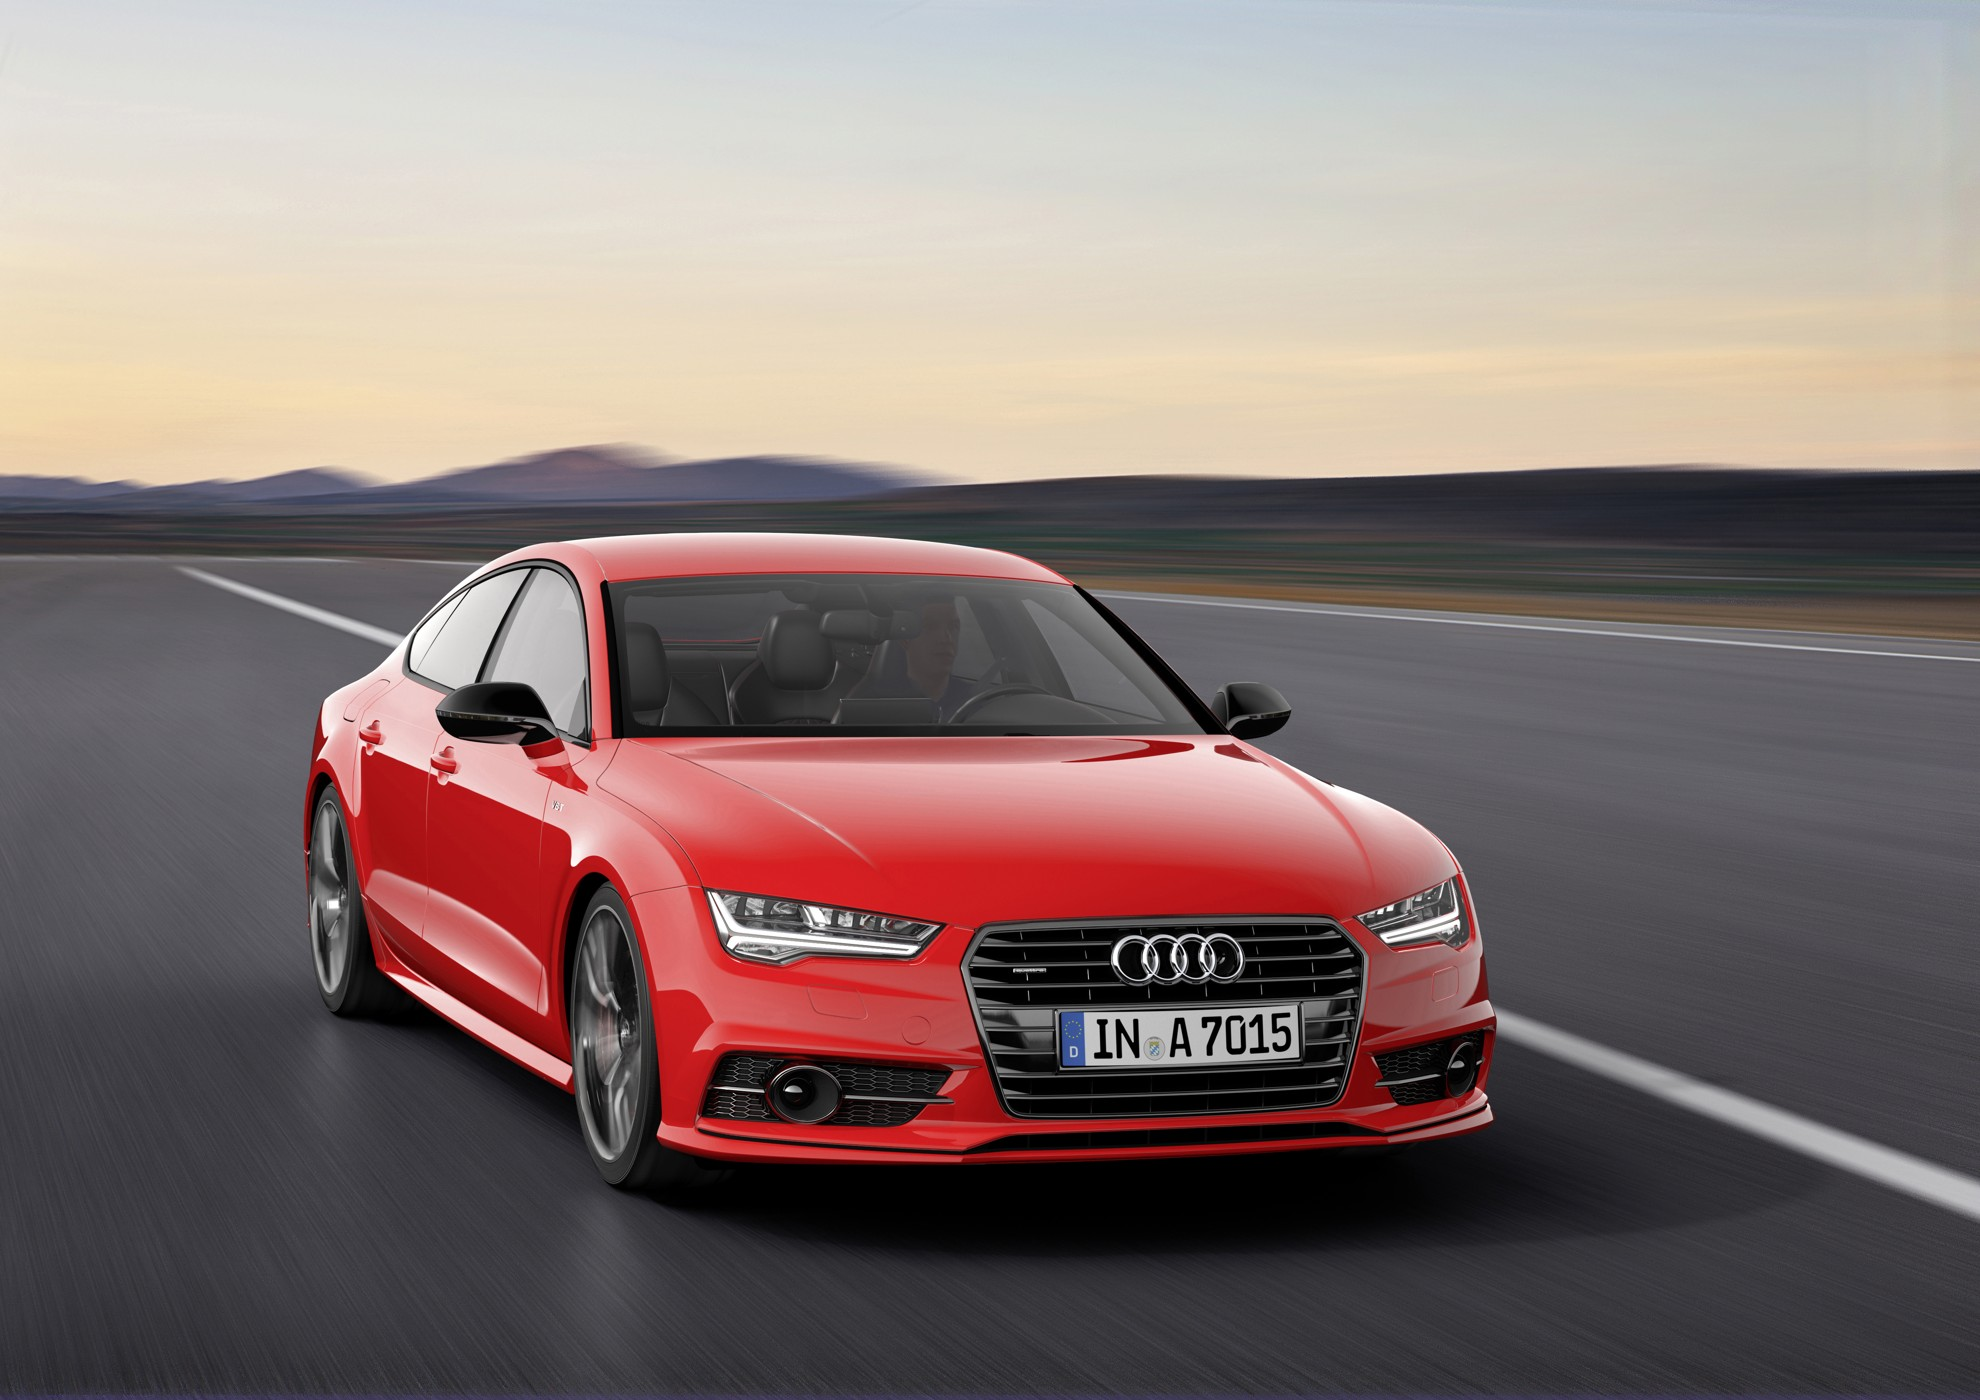 audi a7 sportback 3 0 tdi competition 25 years of audi tdi technology. Black Bedroom Furniture Sets. Home Design Ideas